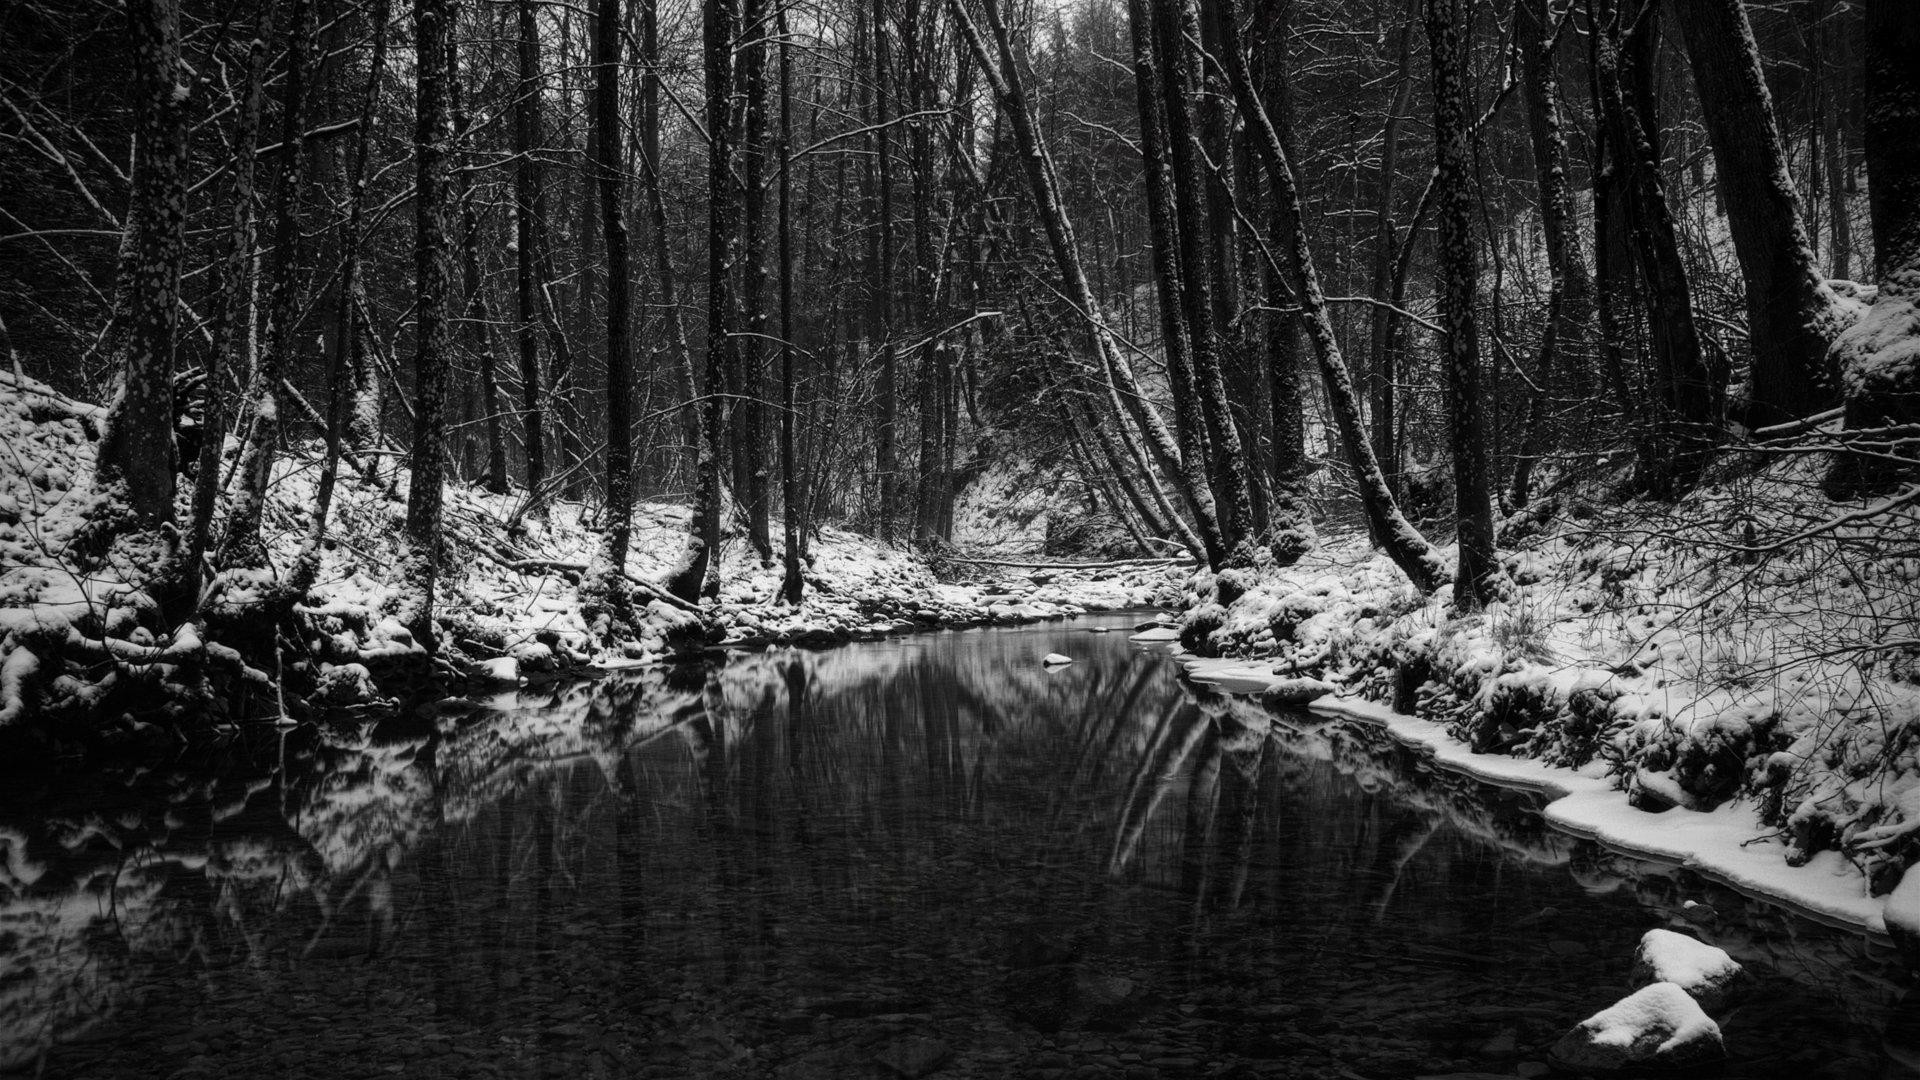 wallpaper.wiki-Download-Black-and-White-Forest-Photo-